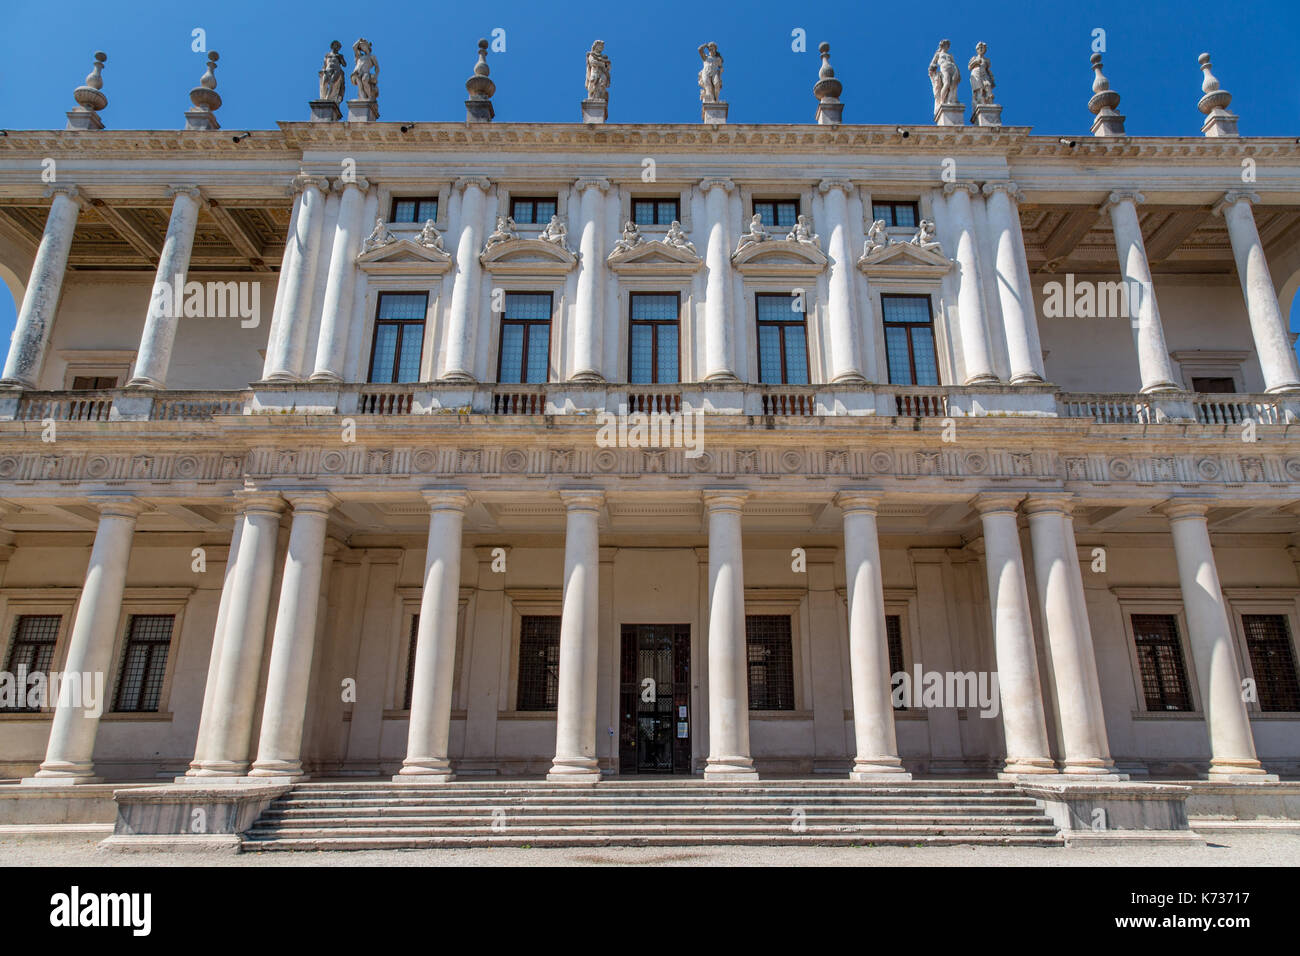 Palazzo Chiericati, palace and art museum in Vicenza, Italy - Stock Image